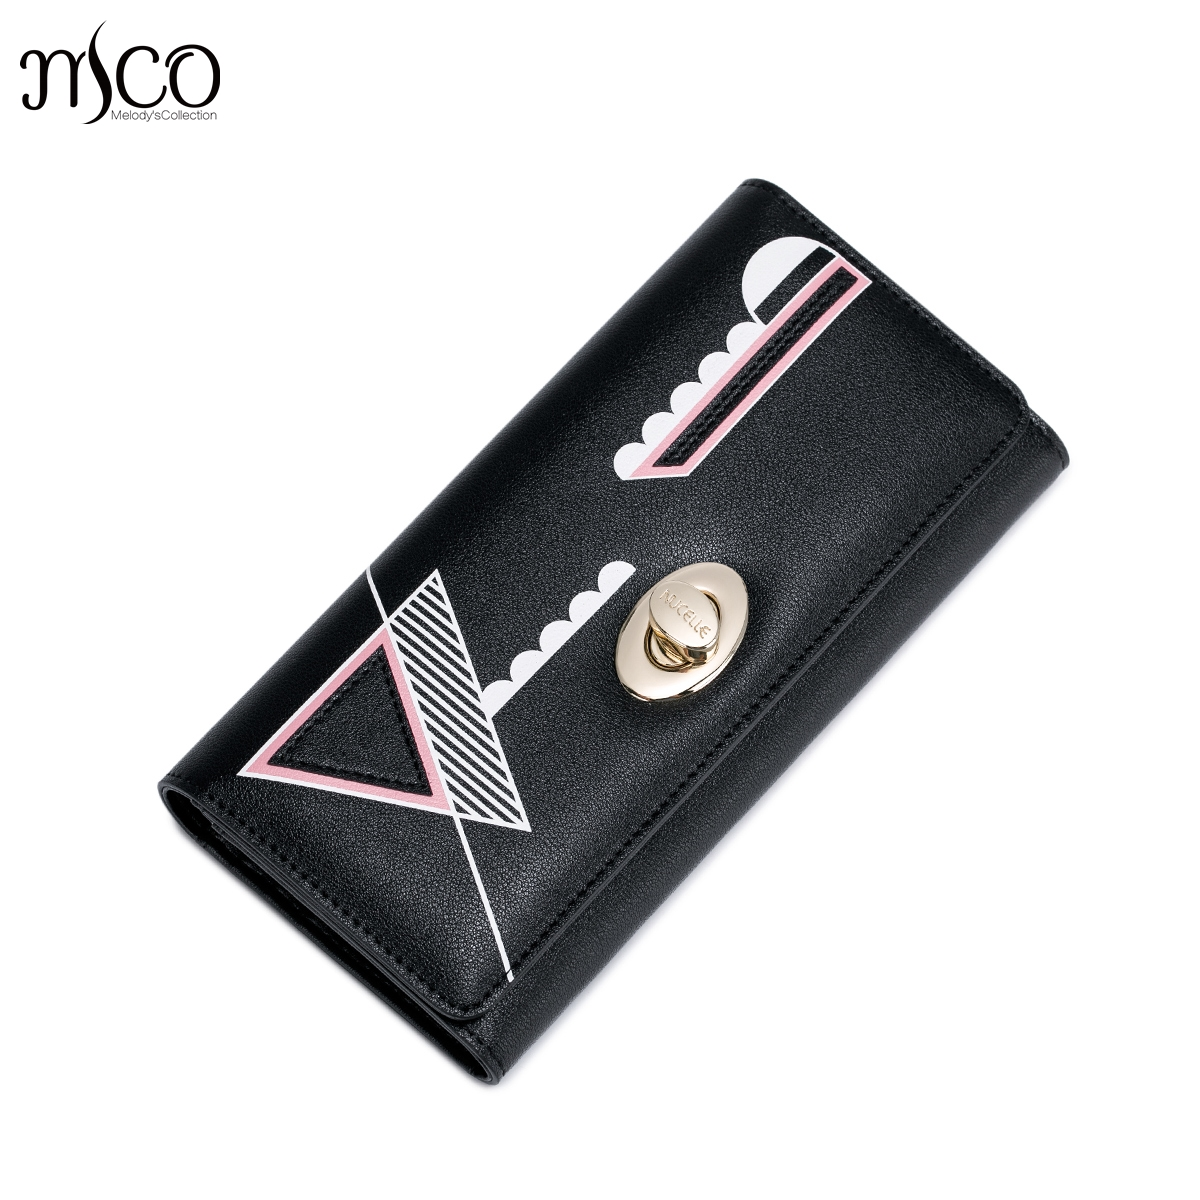 Women's PU Leather Wallets Ladies Foldover Pouch Fashion Clutch Handbags Geometric Lock long Purse Female Elegant Card Gift box